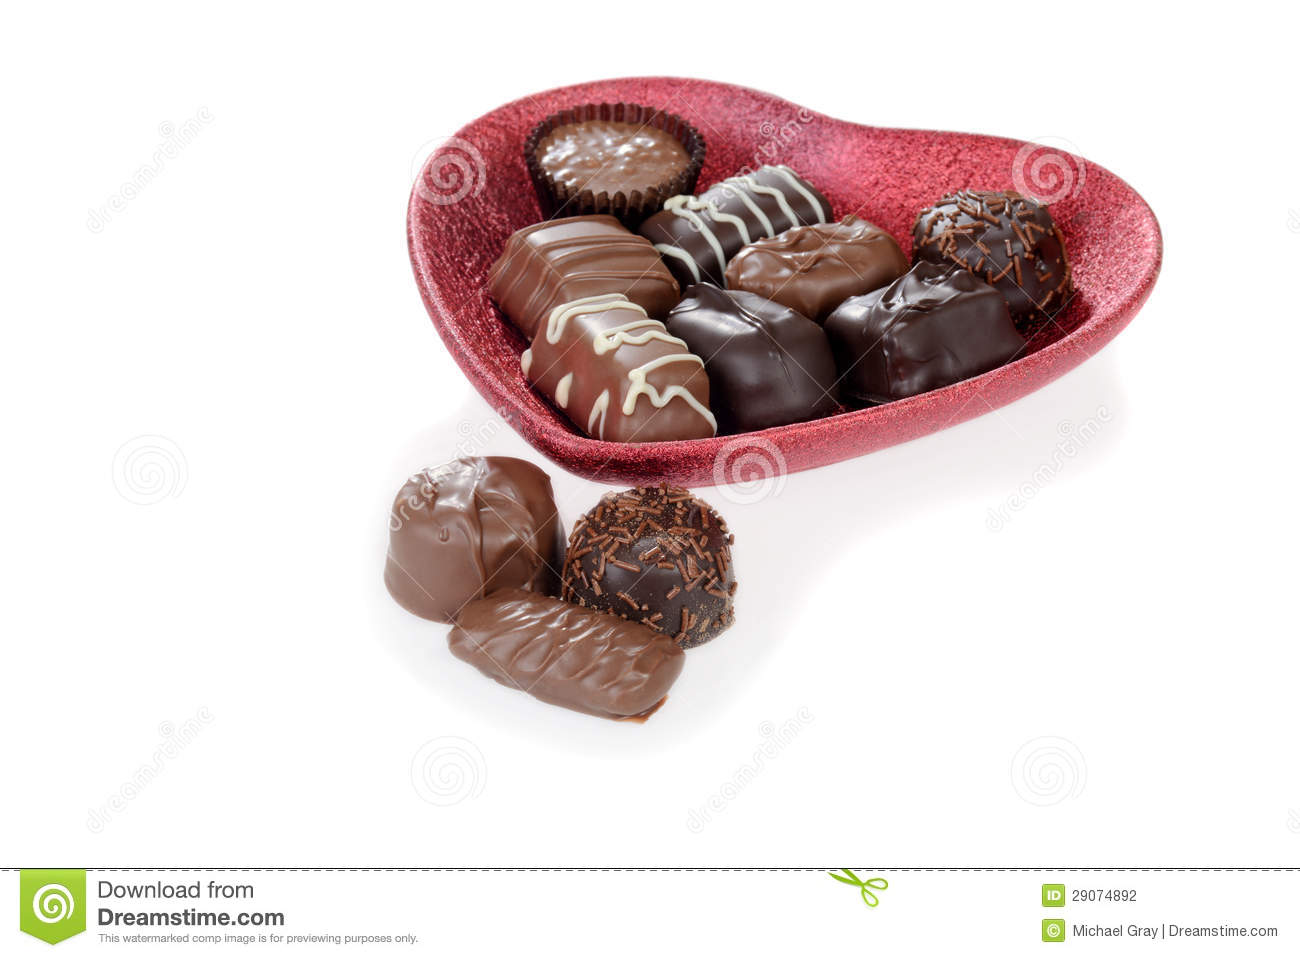 Chocolate candy in red heart bowl